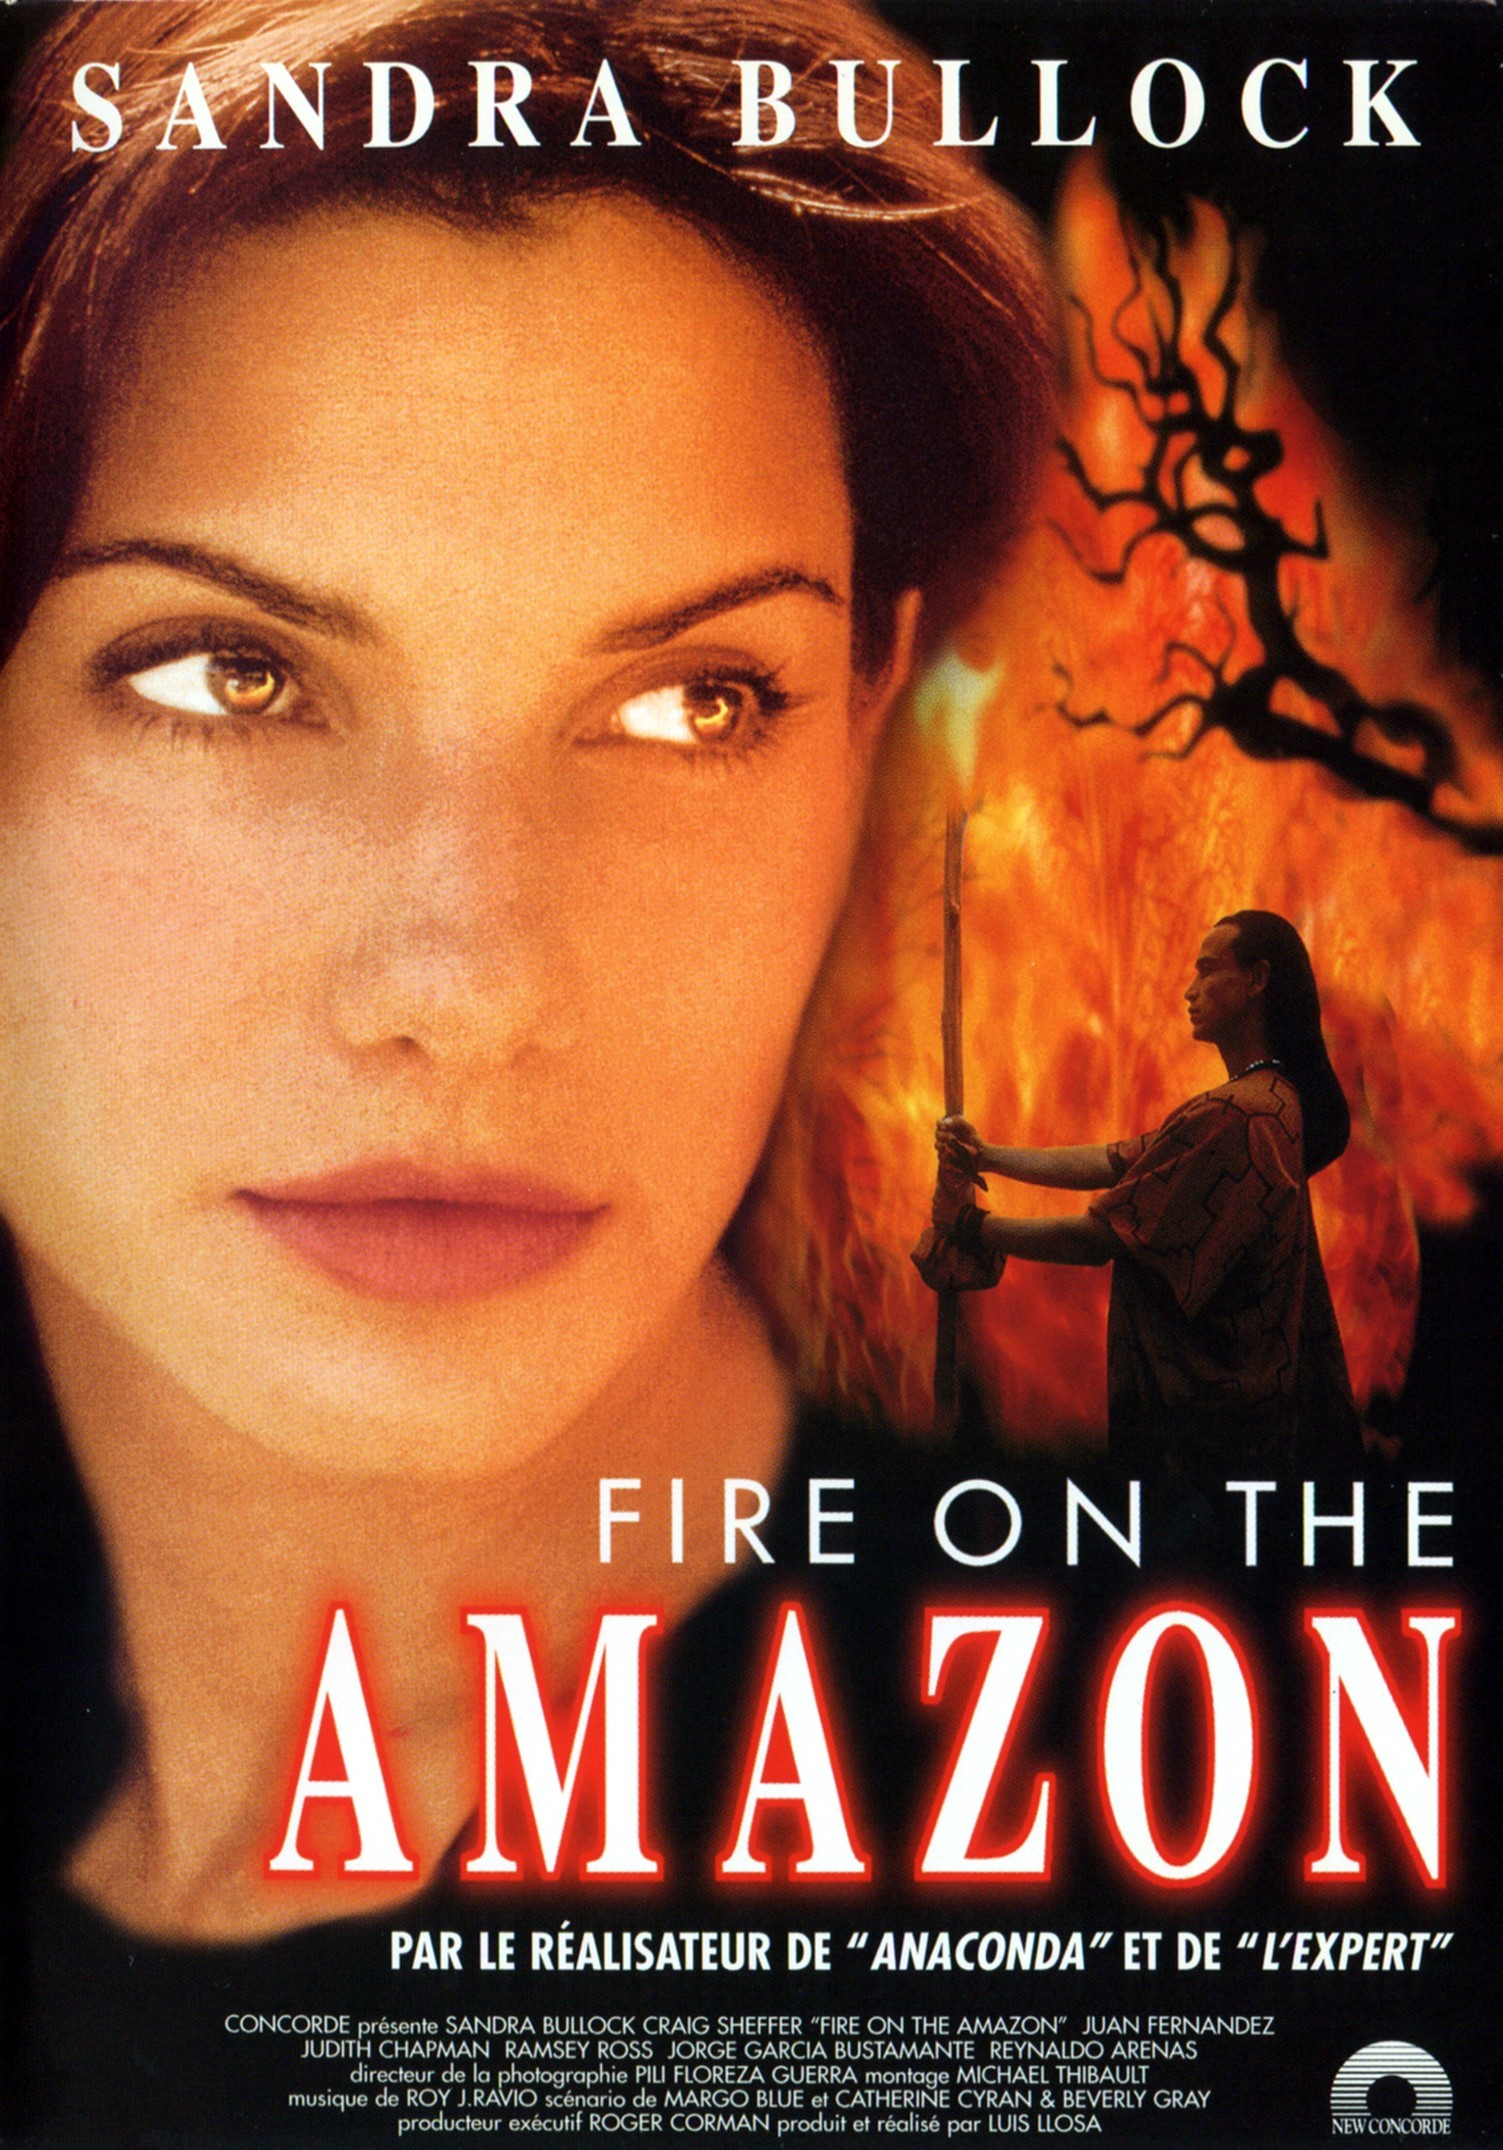 Sandra bullock fire on the amazon uncut adult galleries